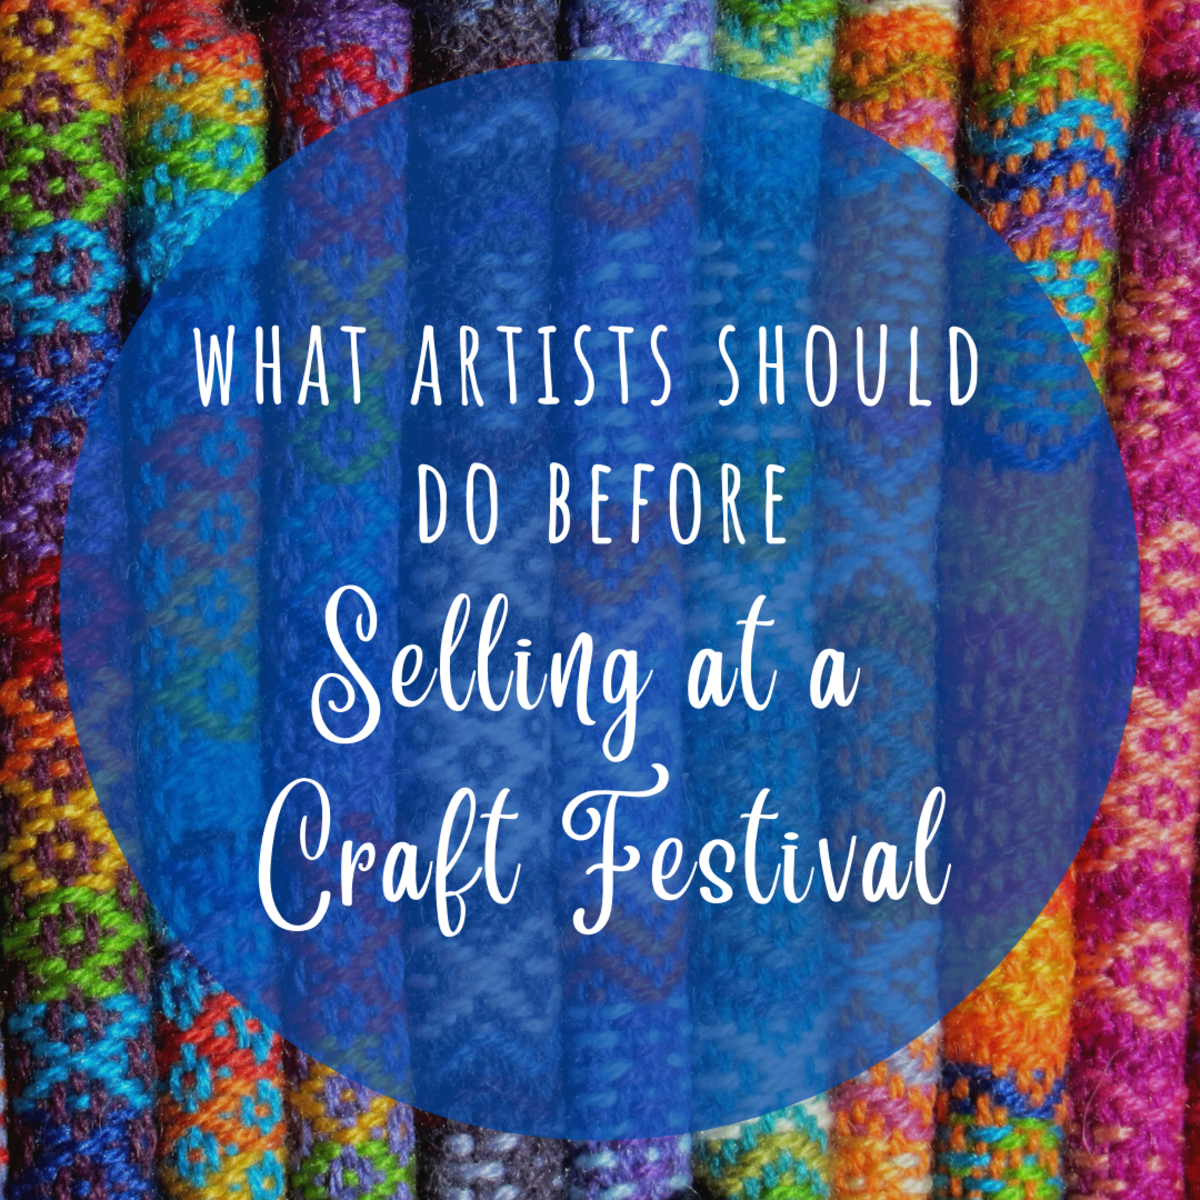 Planning on selling your art or crafts at a festival? Here are seven basic things you'll need to do to be successful.